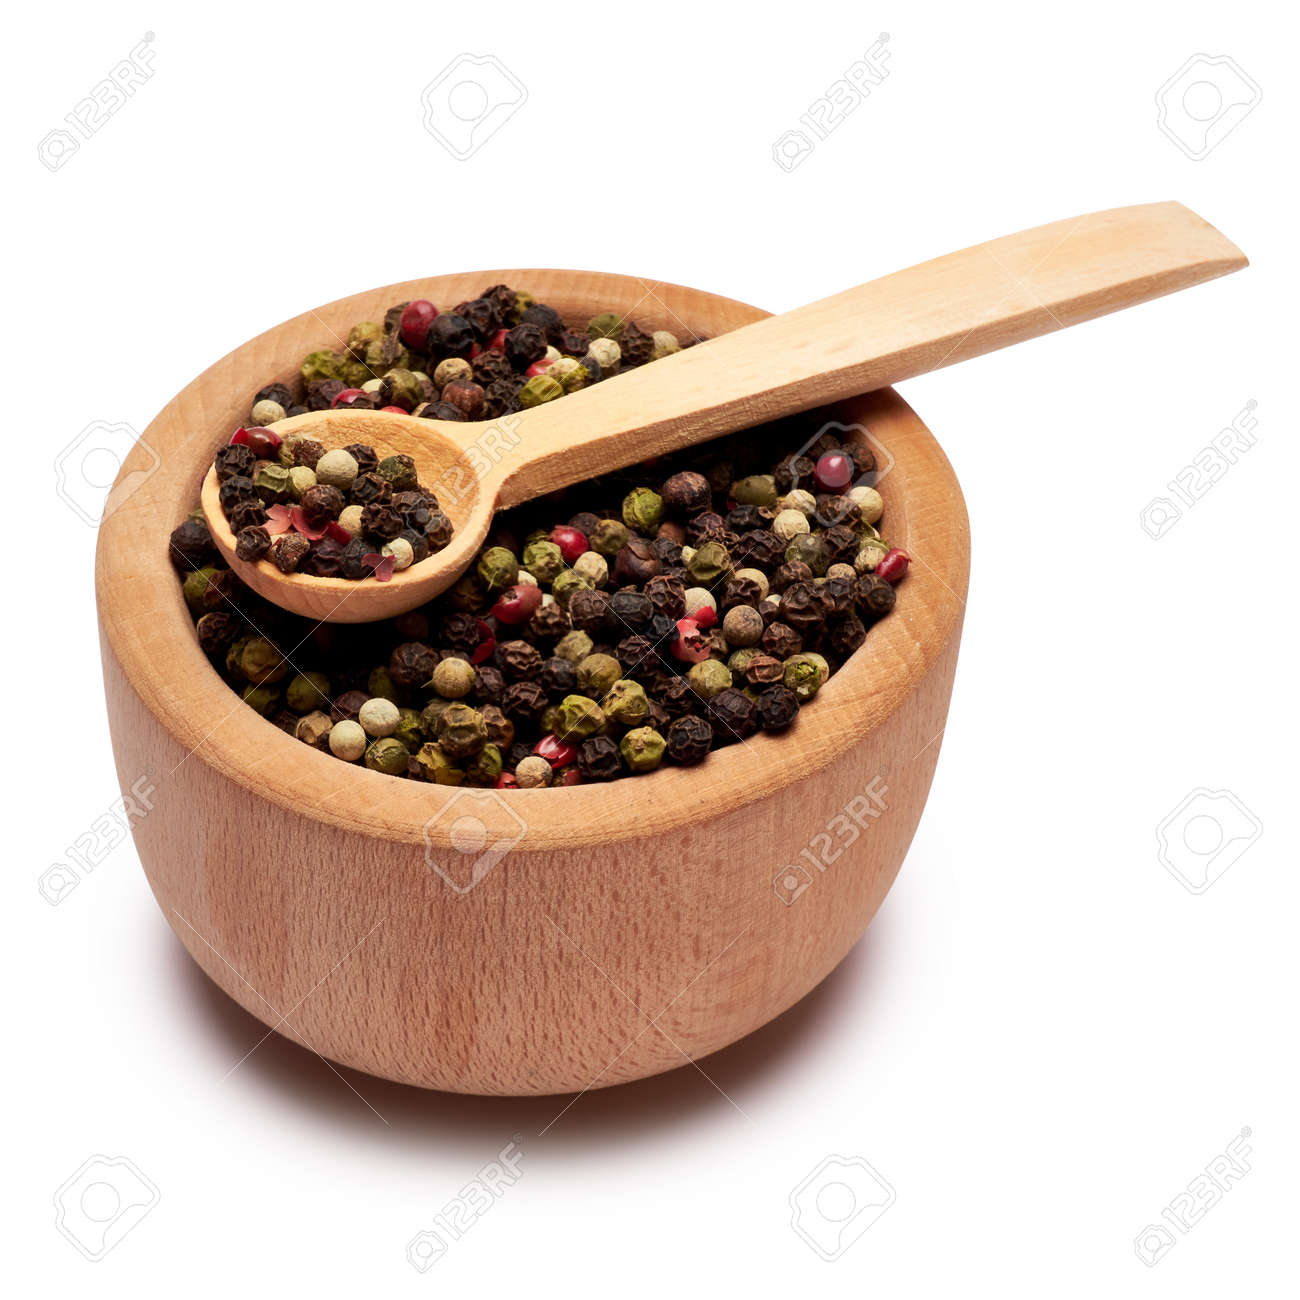 black round pepper spice in wooden bowl or mortar on white background - 169835435